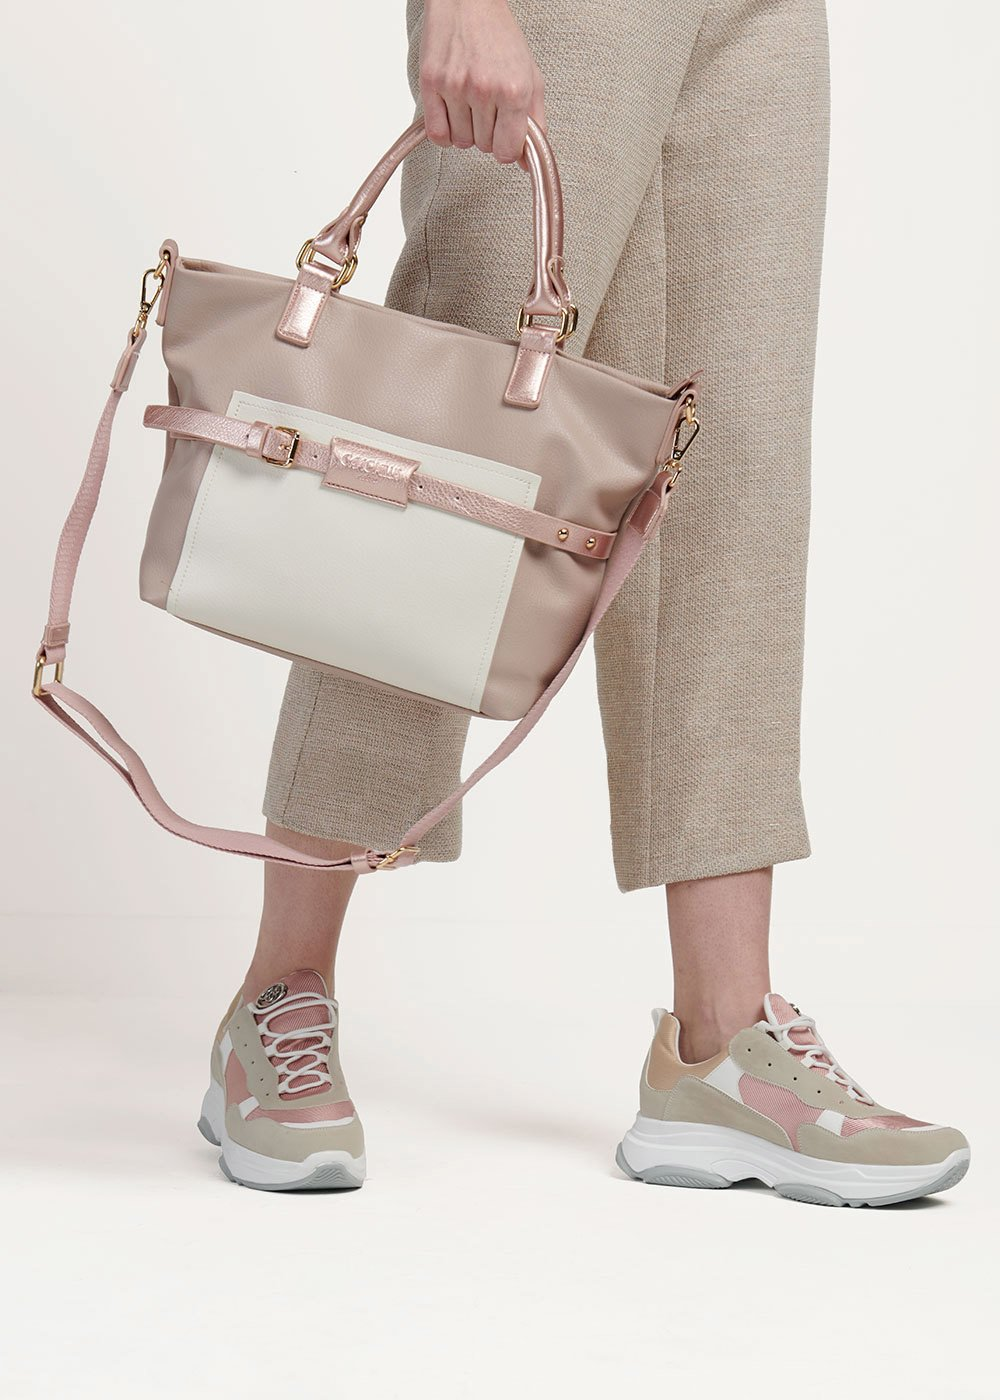 Backy two-tone handbag - Pink - Woman